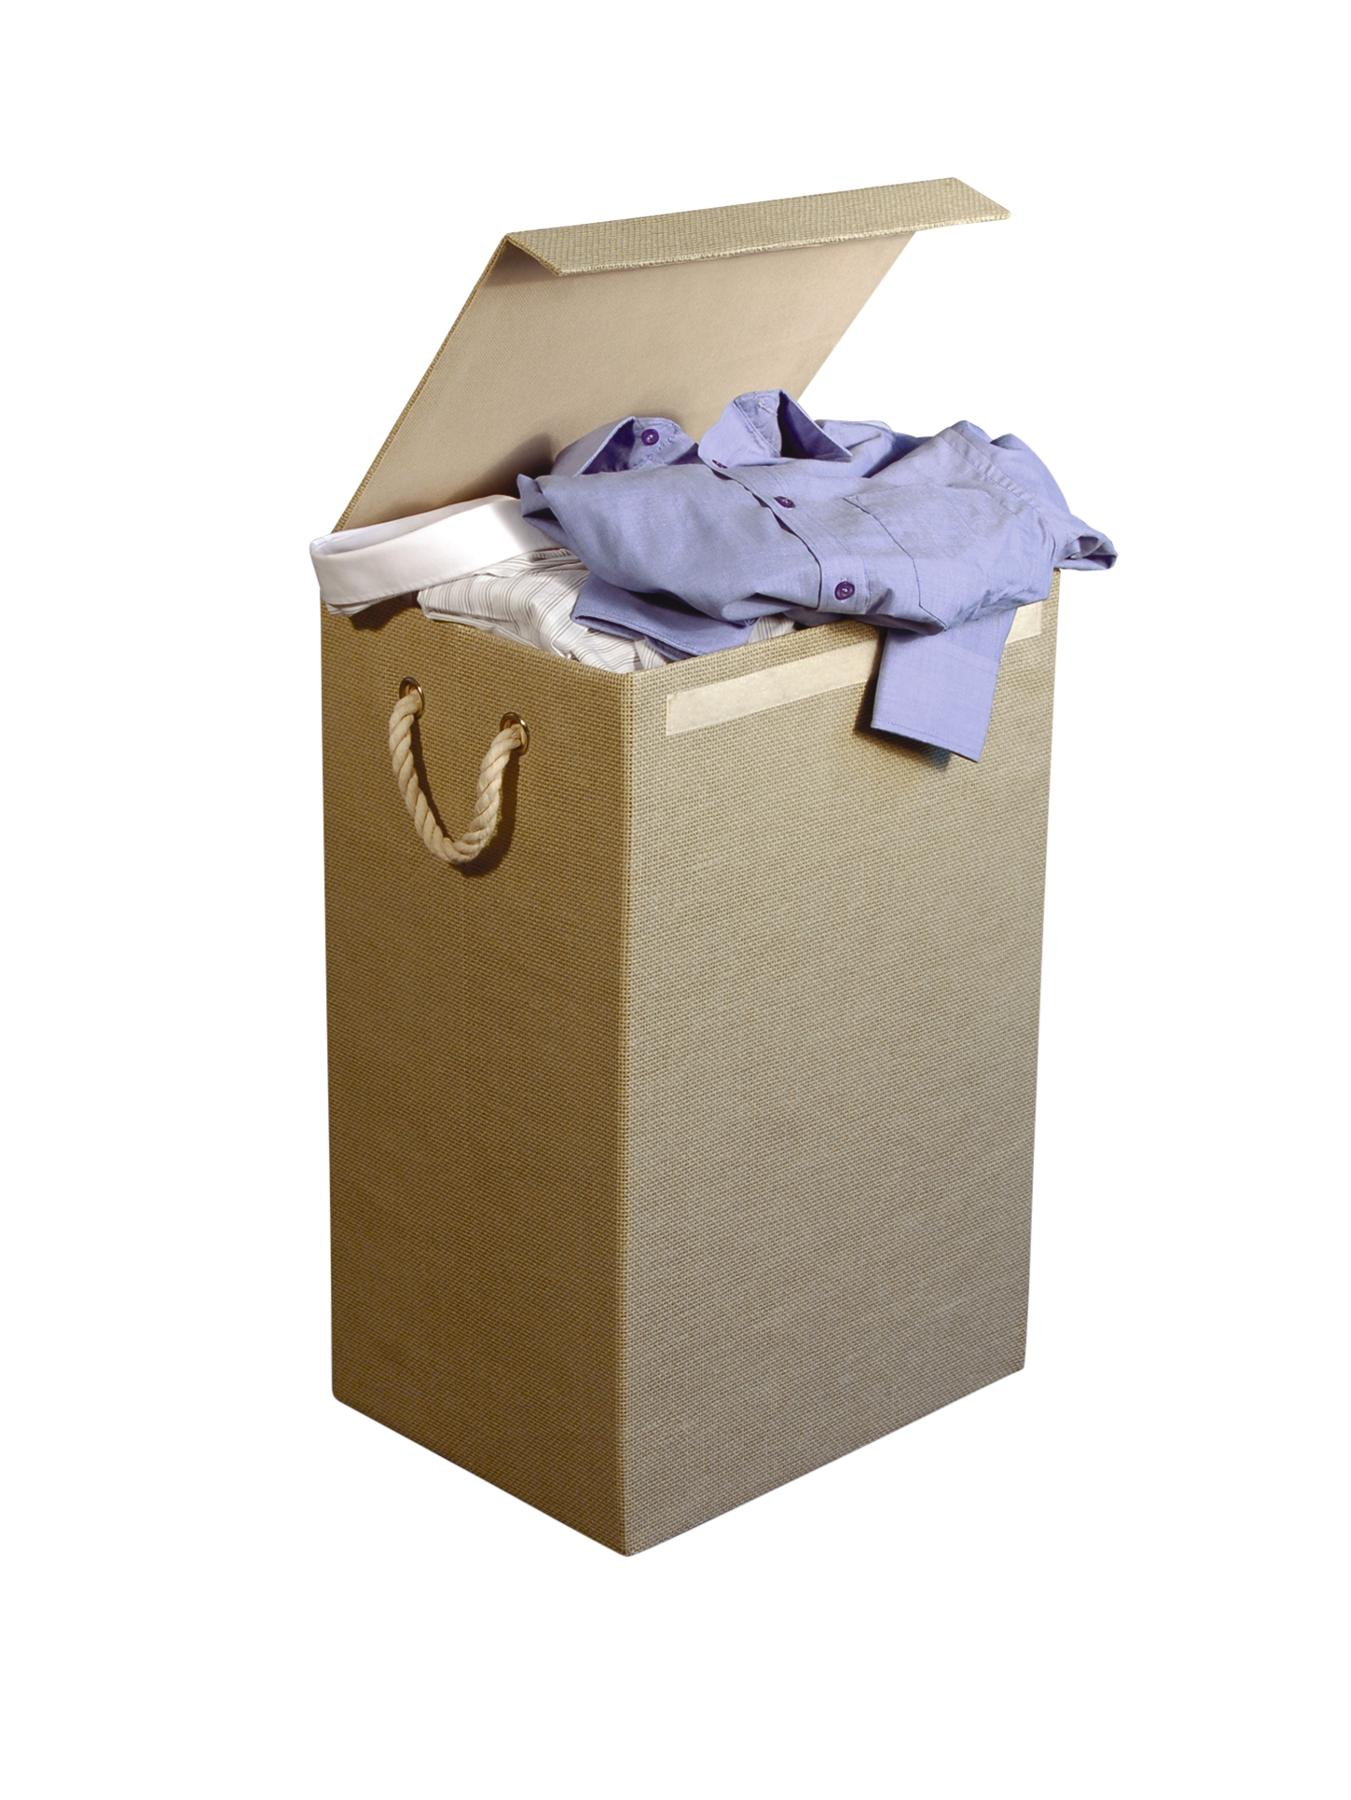 Buy Hamper Buy Cheap Laundry Hamper Compare Products Prices For